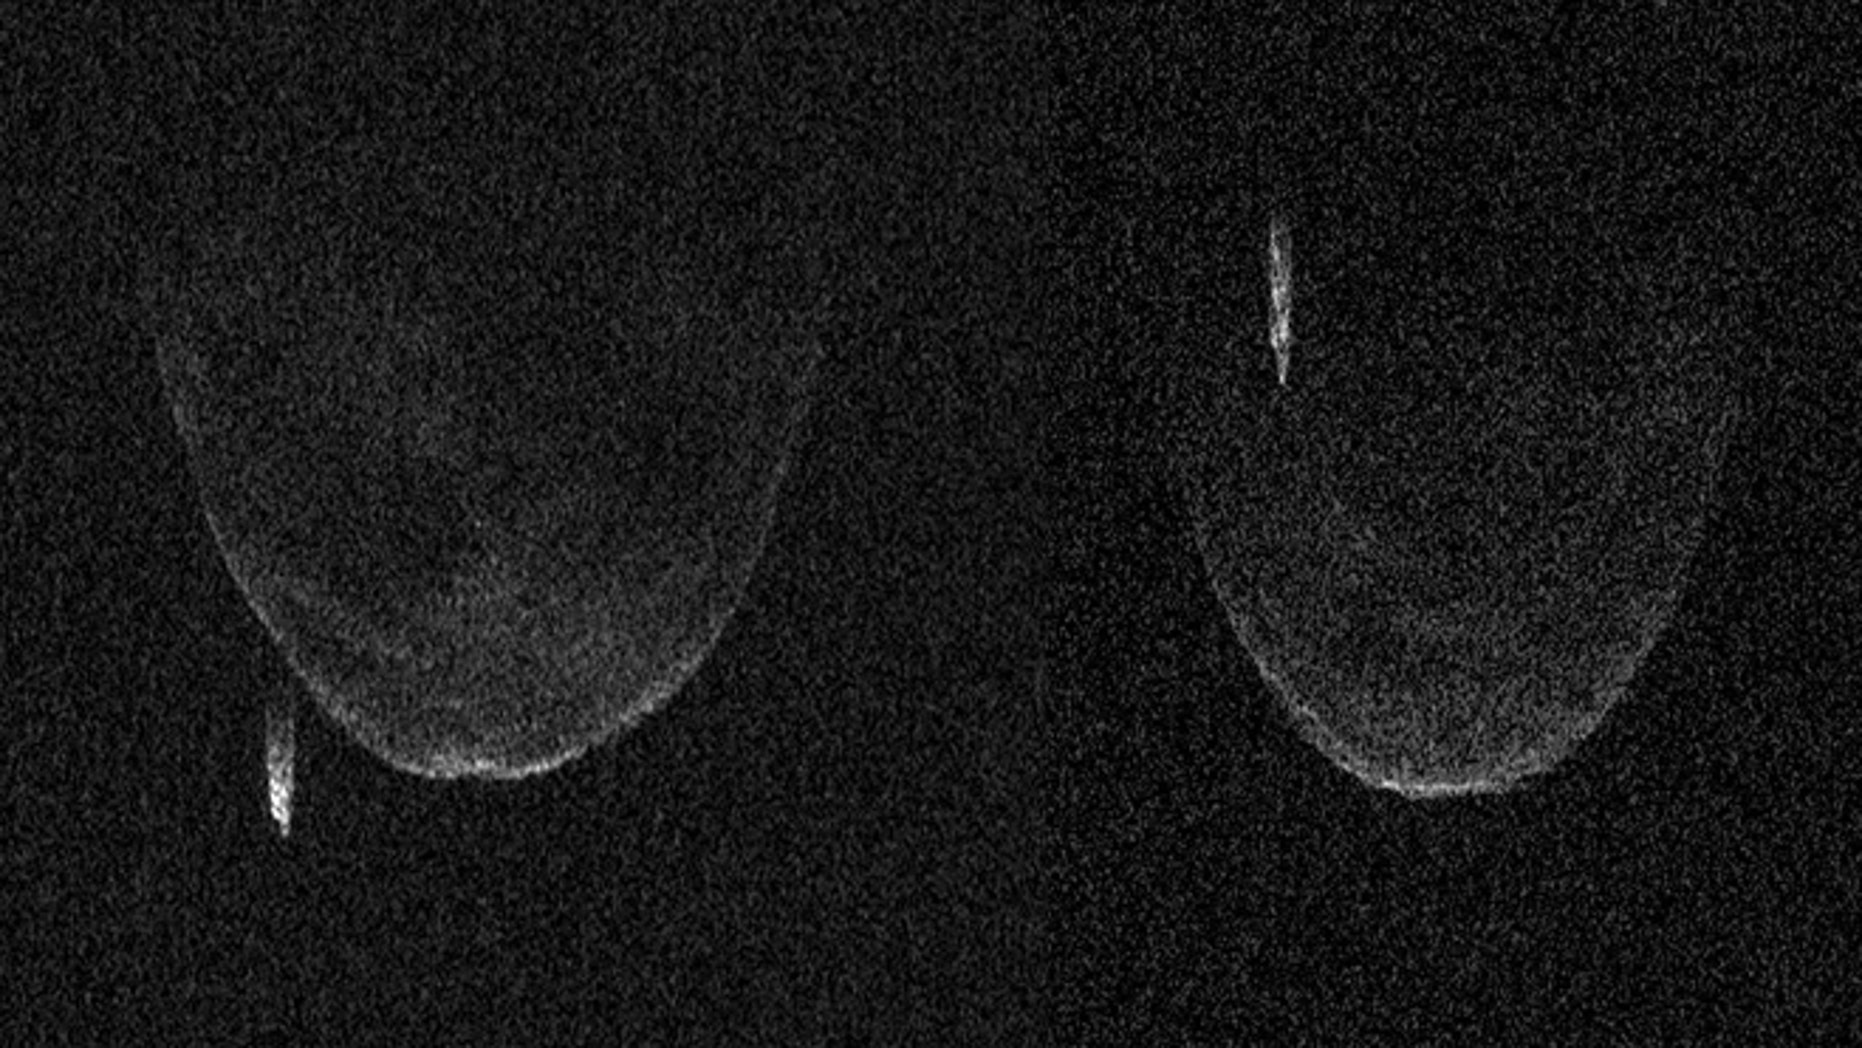 Asteroid pictured from radar image (photo 1 on left) and (photo 2 on right).